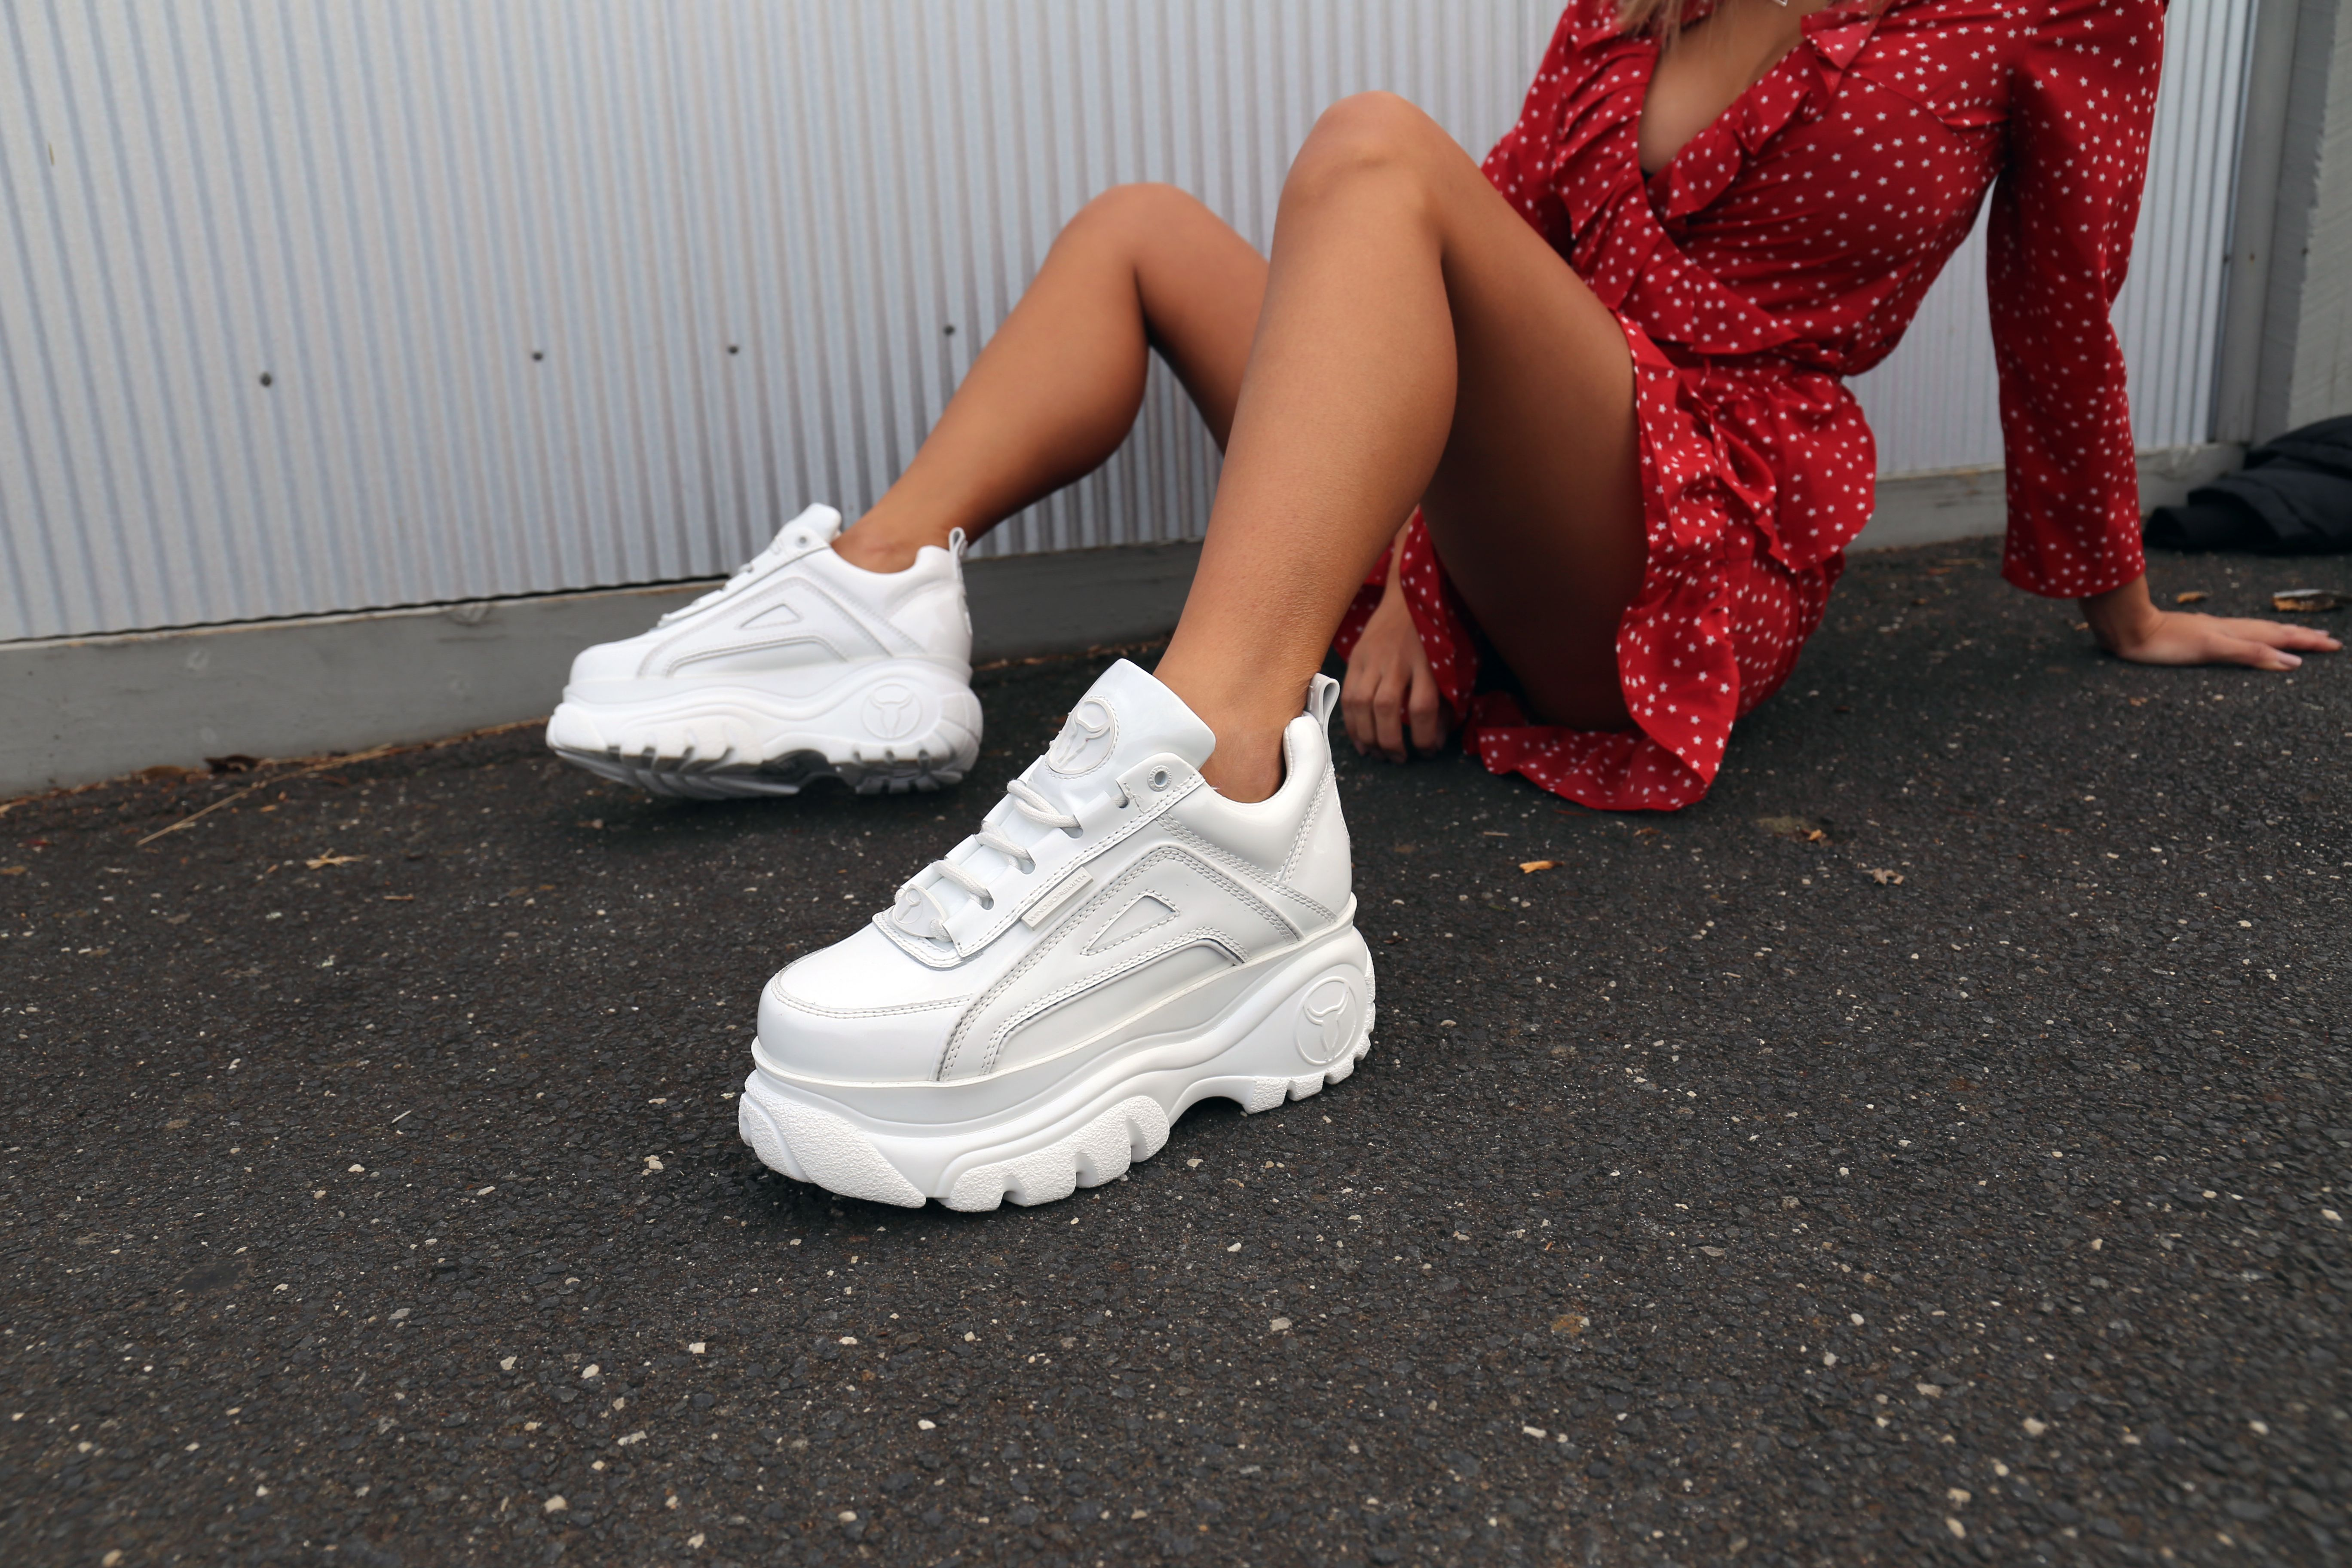 Pin on SNEAKERS PHOTOSHOOT 2018